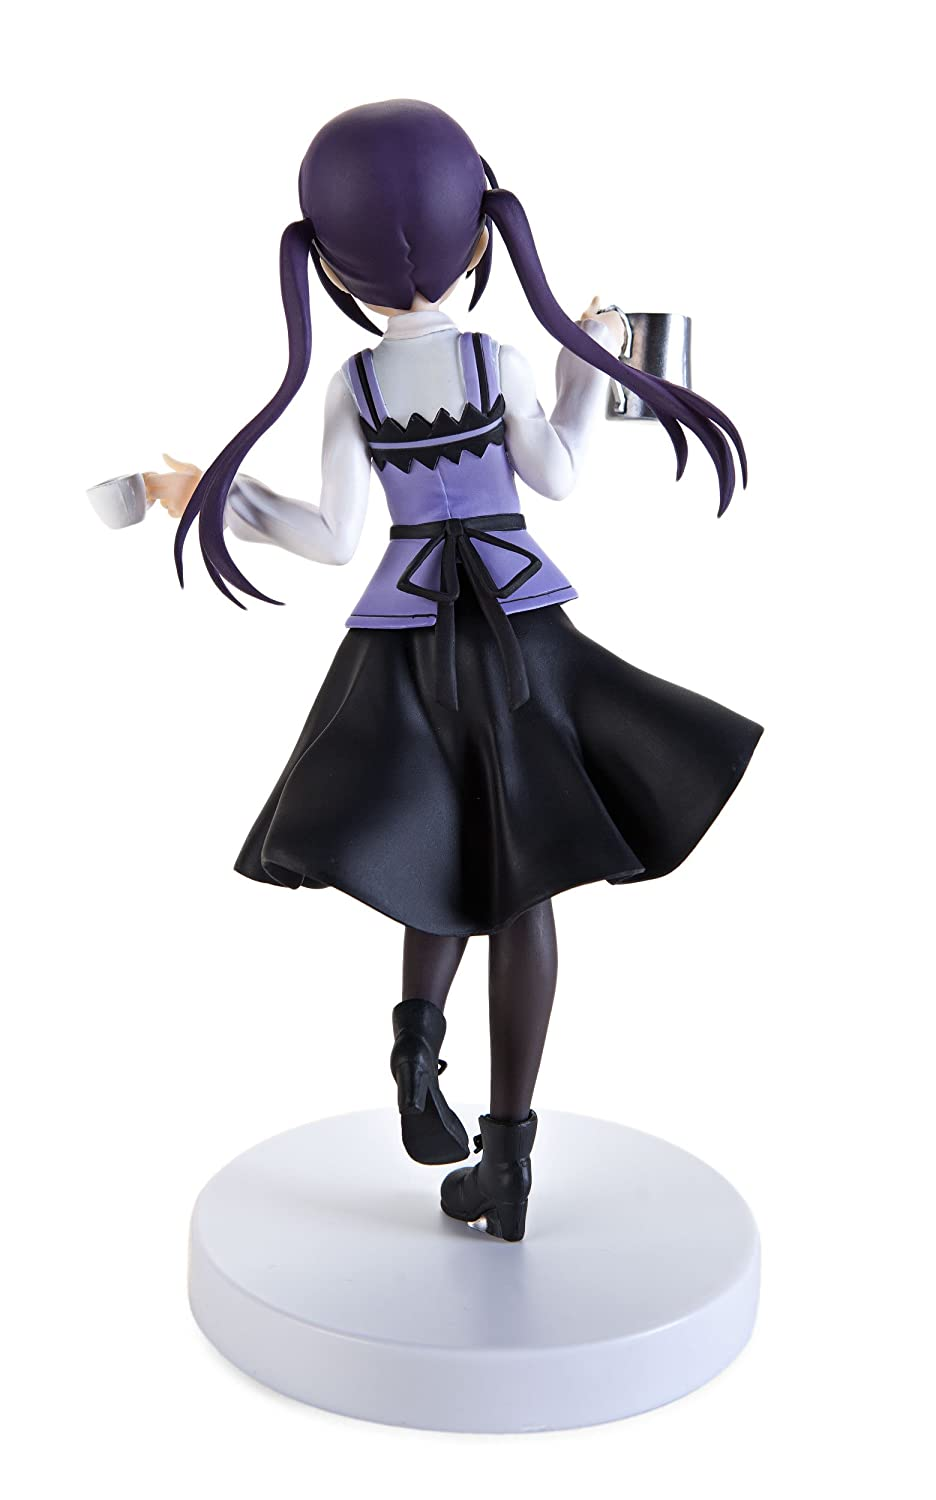 Tea Time Special Figure Rize Japan Anime Lise Matching World Is the Order a Rabbit